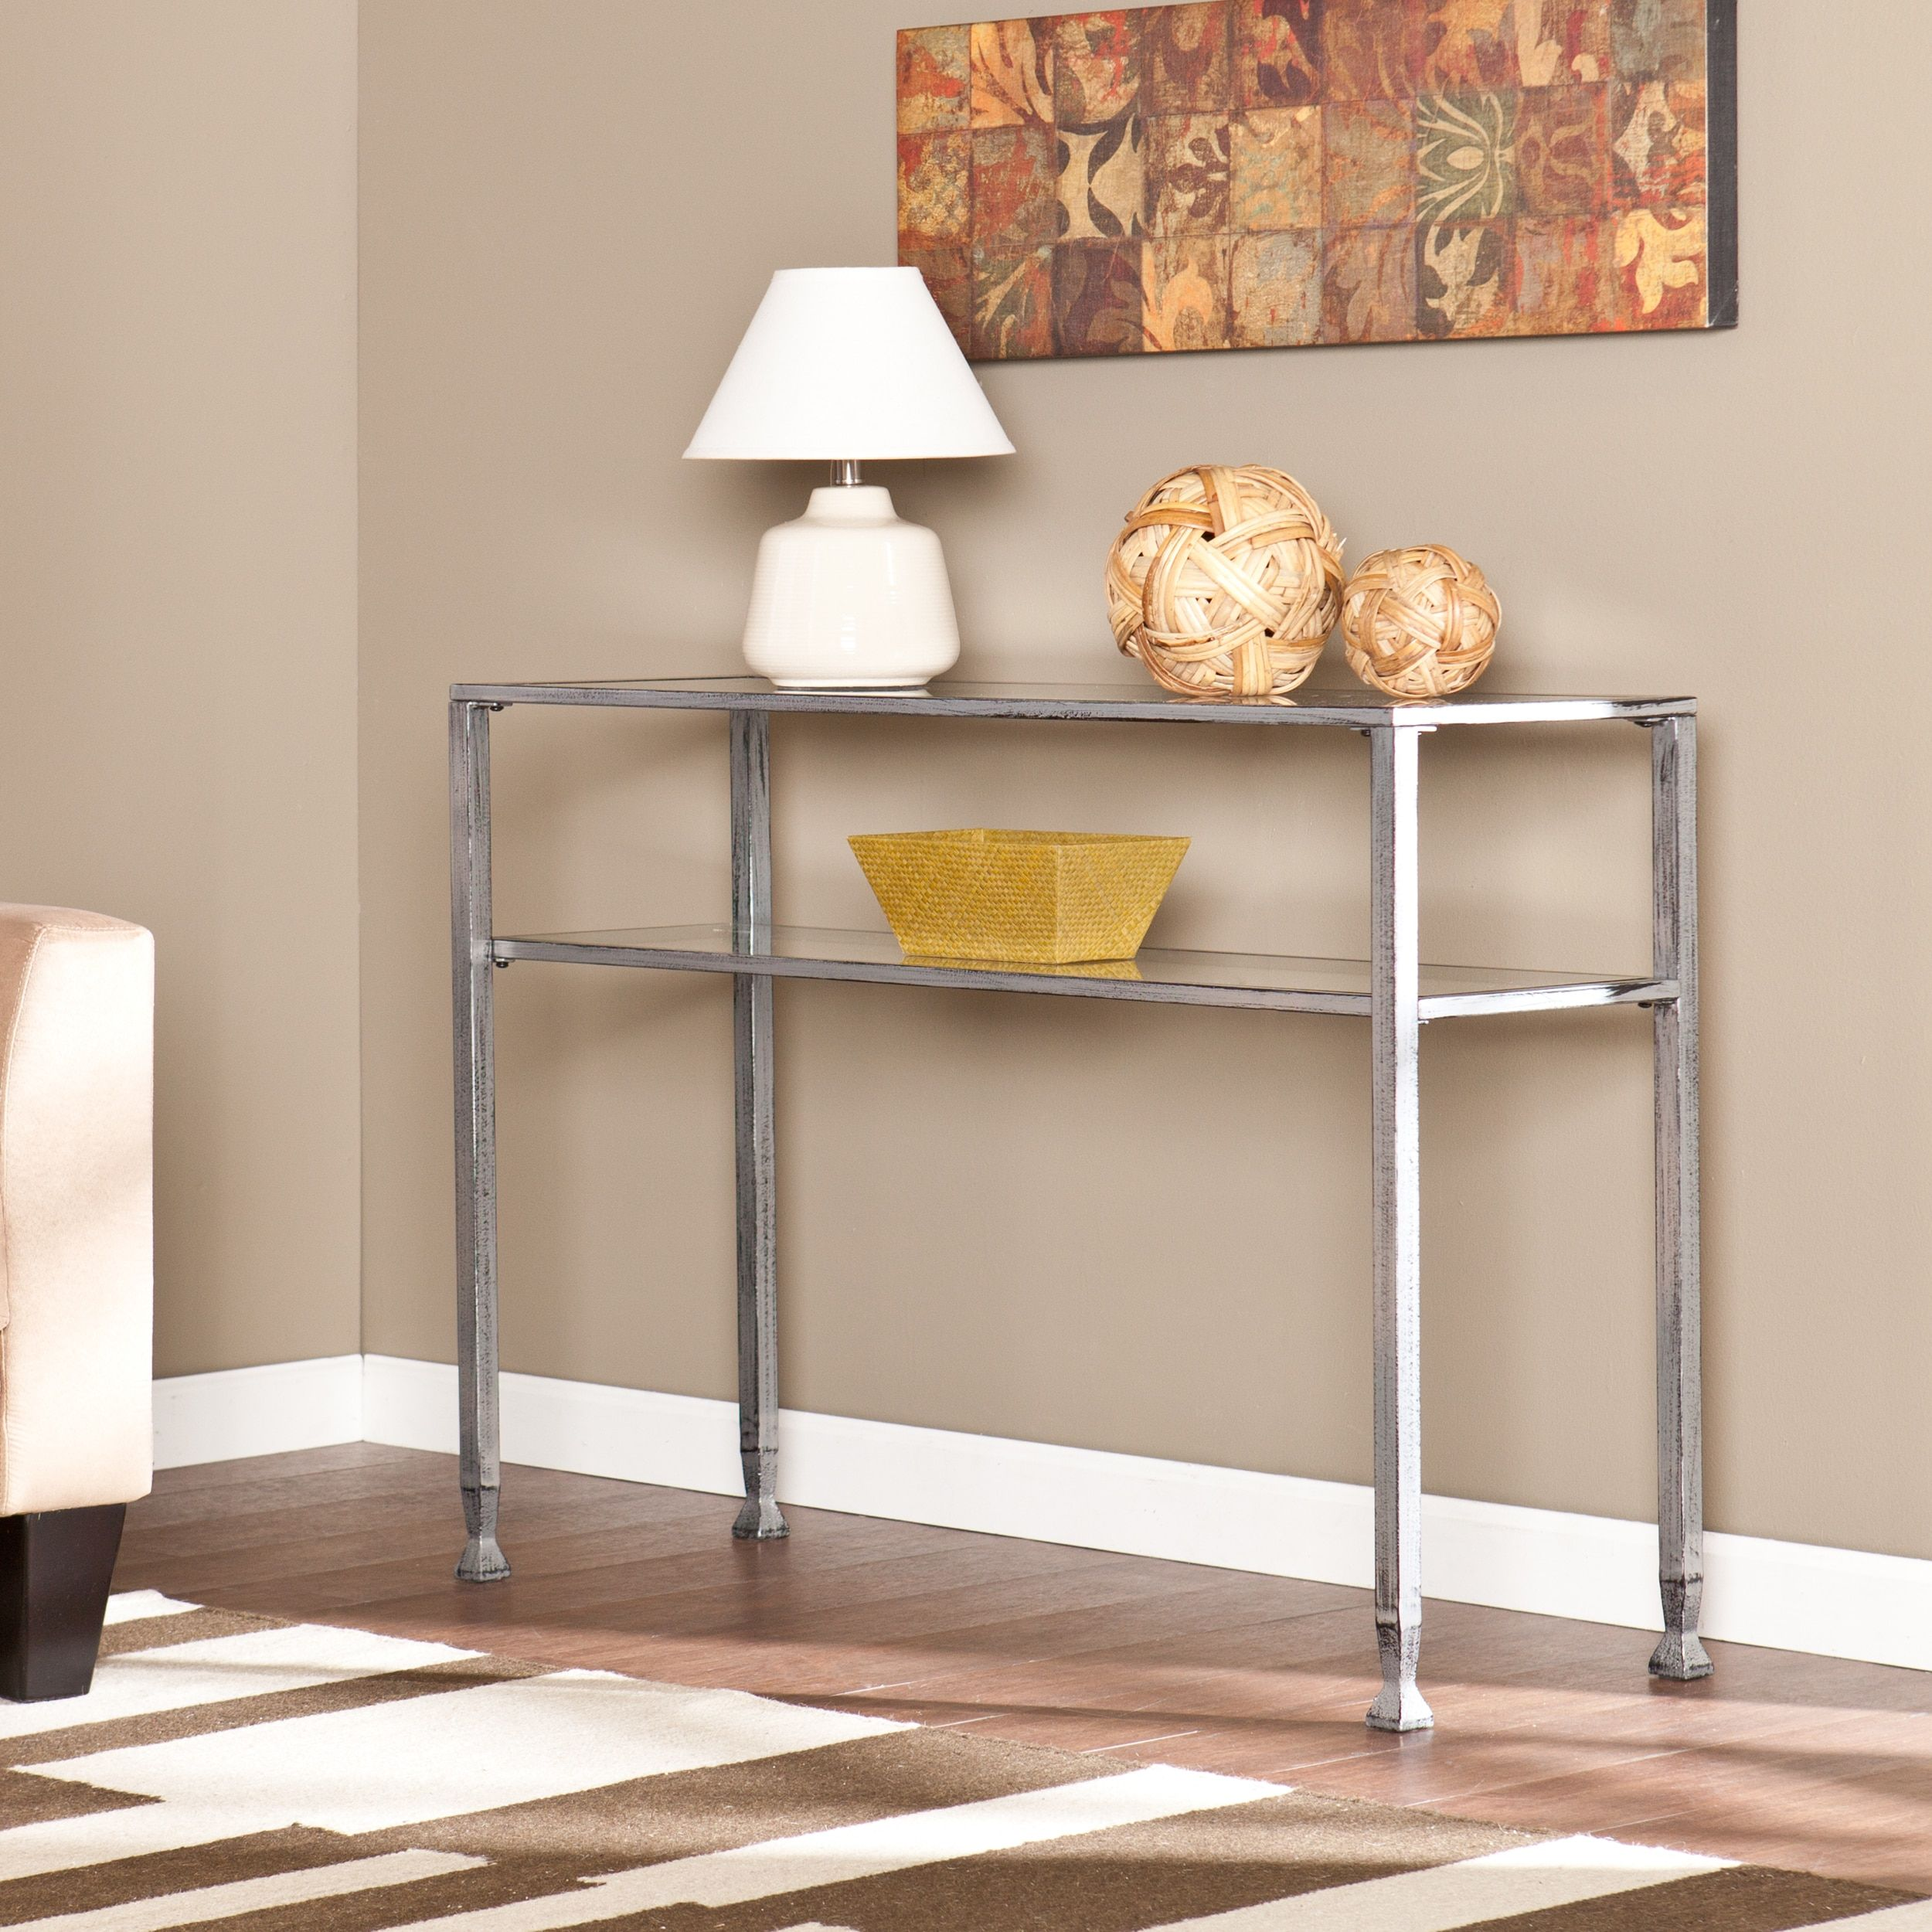 silver glass living room furniture%0A Harper Blvd Silver Metal and Glass Console Table by Harper Blvd  Silver  MetalLiving Room FurnitureConsole